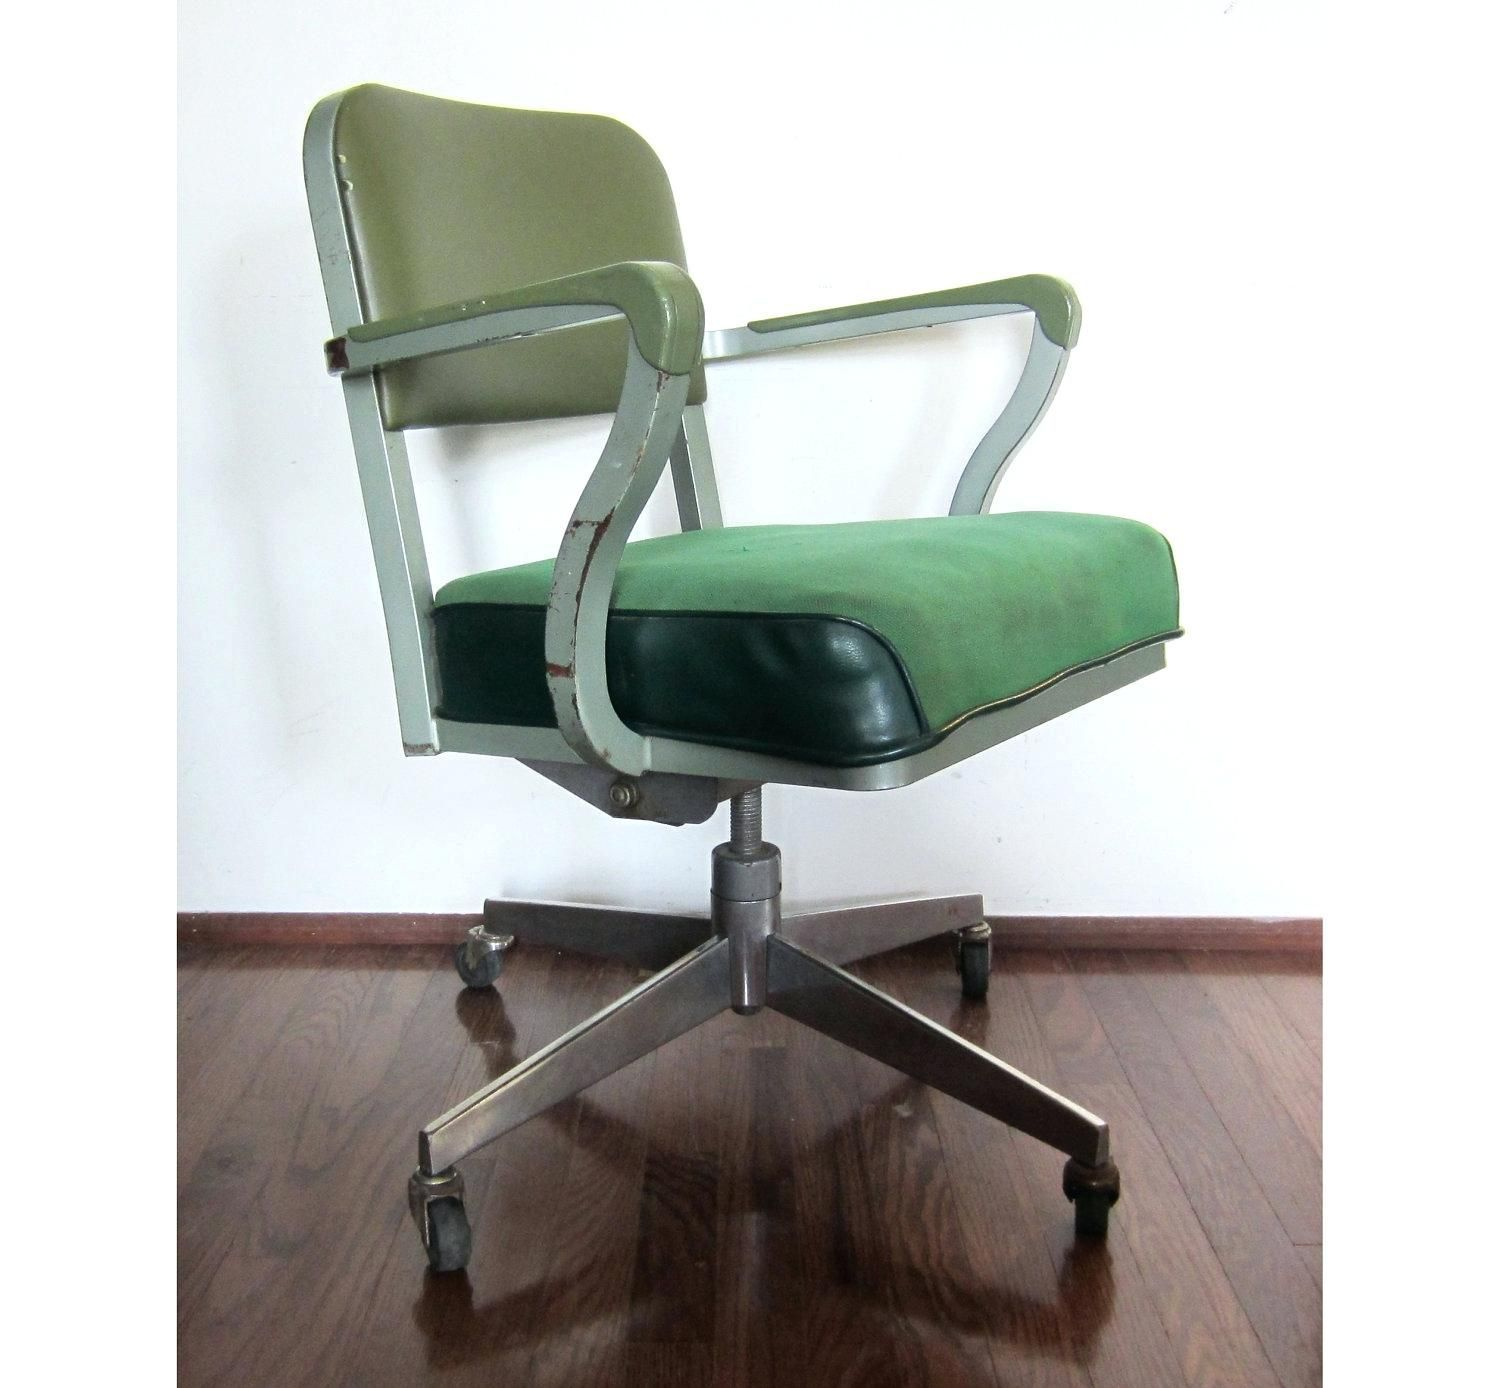 office chair neck support Steelcase chair, Office chair